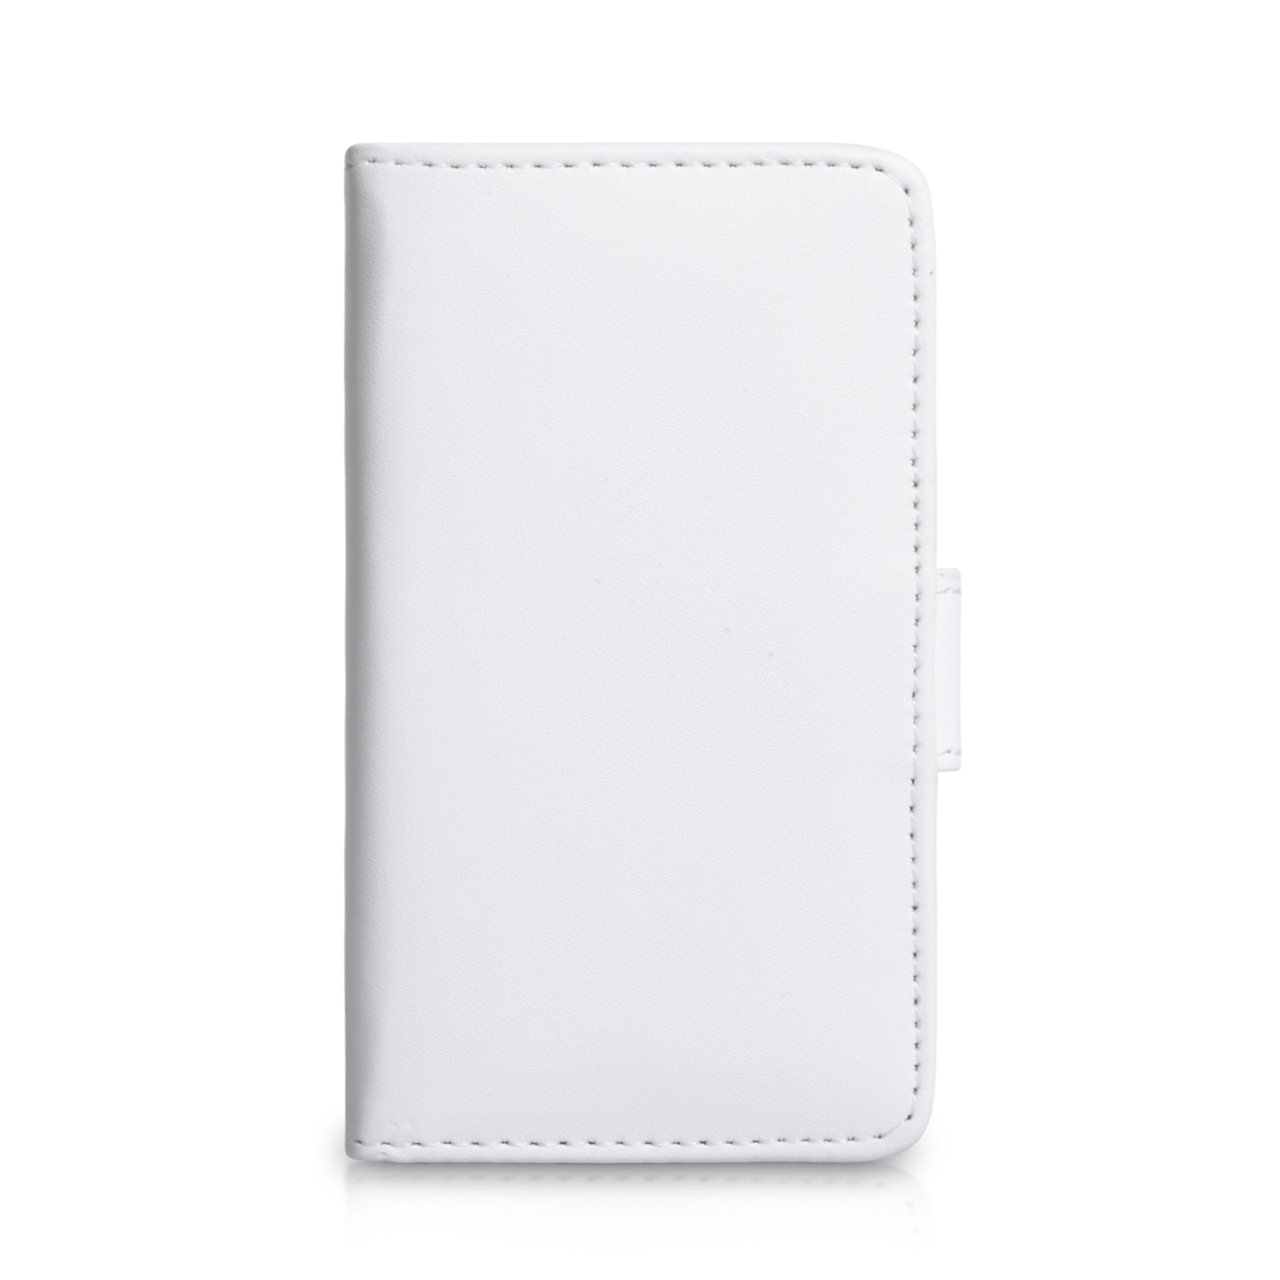 YouSave Accessories Sony Xperia E Leather Effect Wallet Case - White